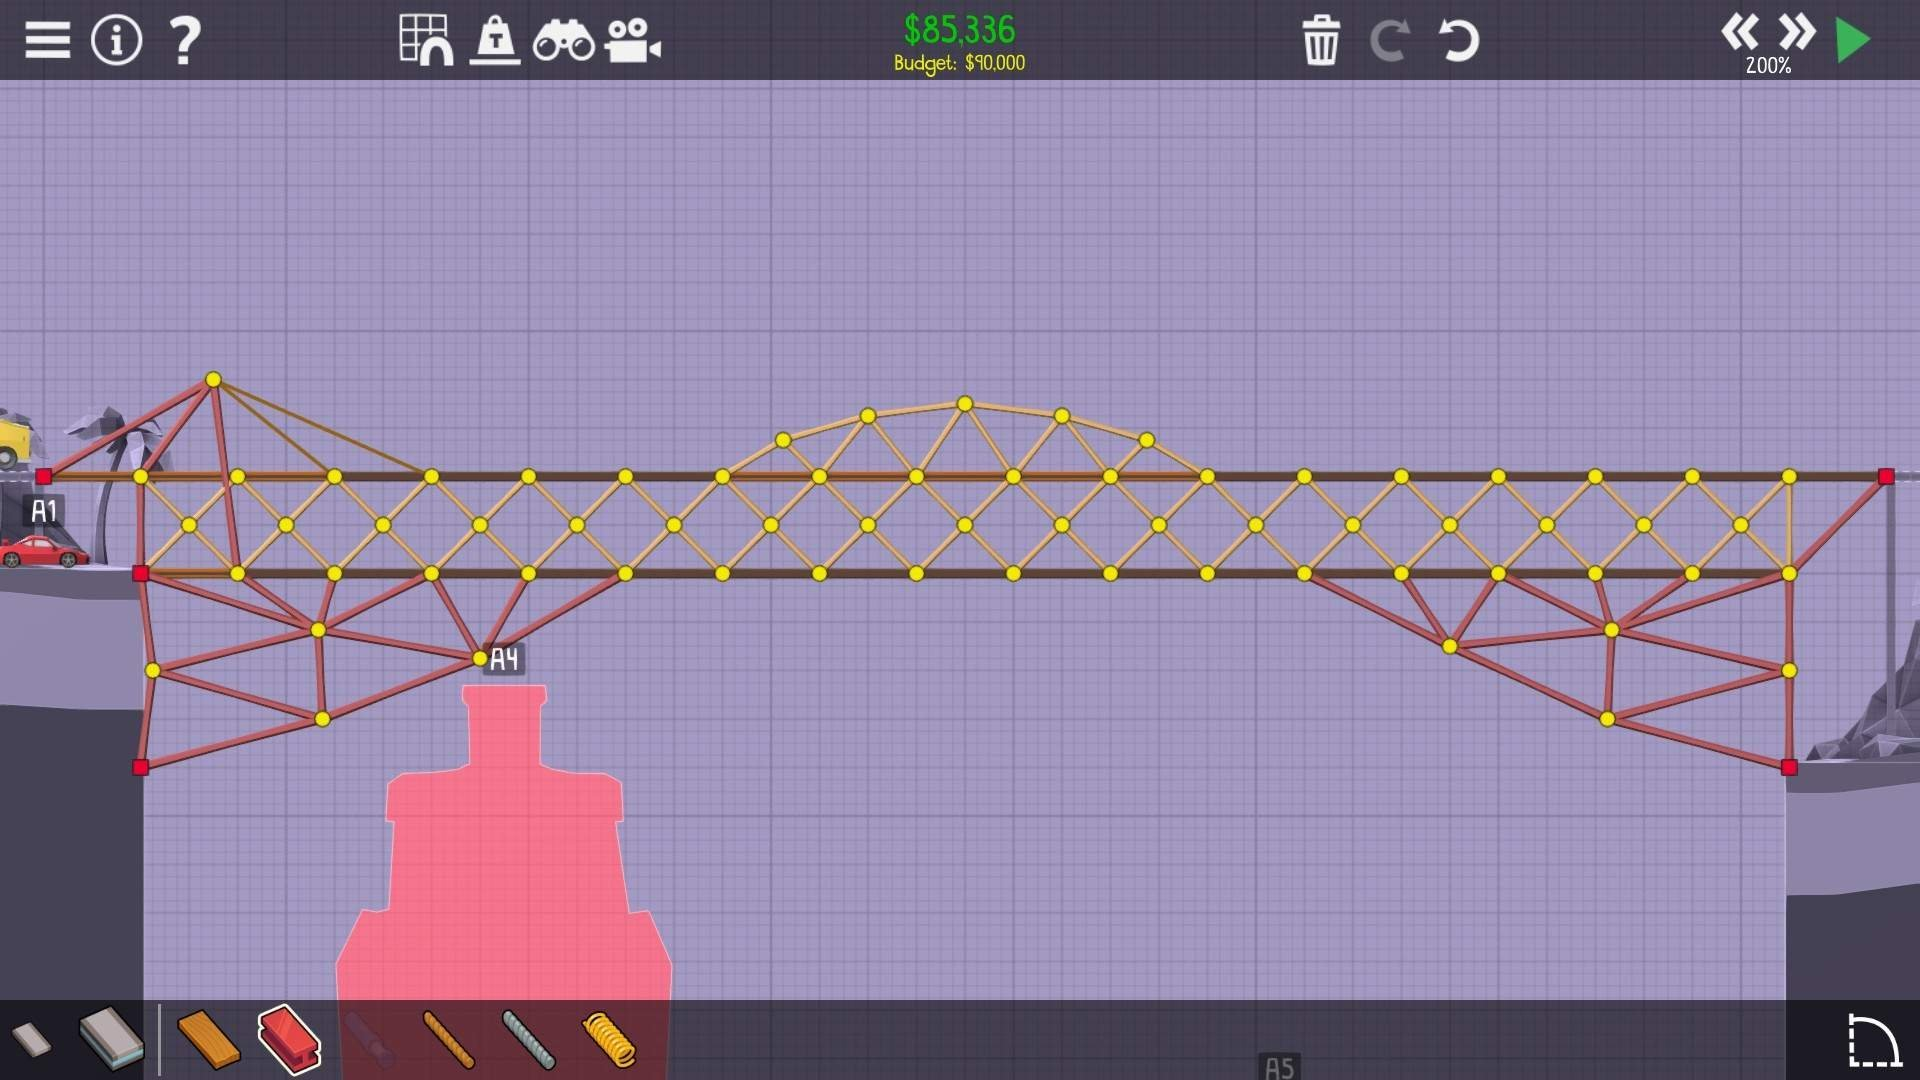 Poly Bridge 2 - All Challenges Solutions for Pine ...